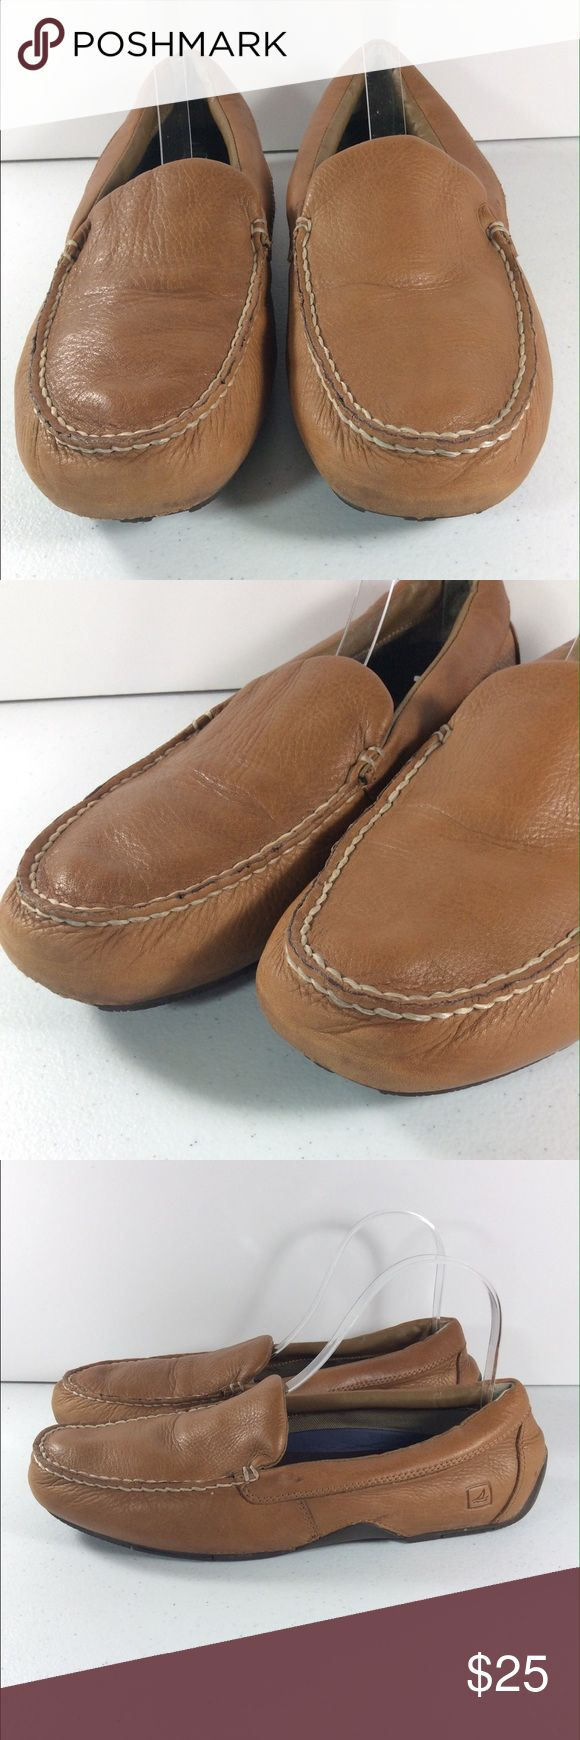 Sperry Top Sider Pilot Loafers Shoes Men's 11.5 Up for auction is this great pair of Sperry Top-Sider Pilot Loafers.  Mens Size 11.5 CONDITION: Great Condition! Some scuffs. Buttery soft leather! This item shows some overall wear. Please see photos. Sperry Top-Sider Shoes Loafers & Slip-Ons